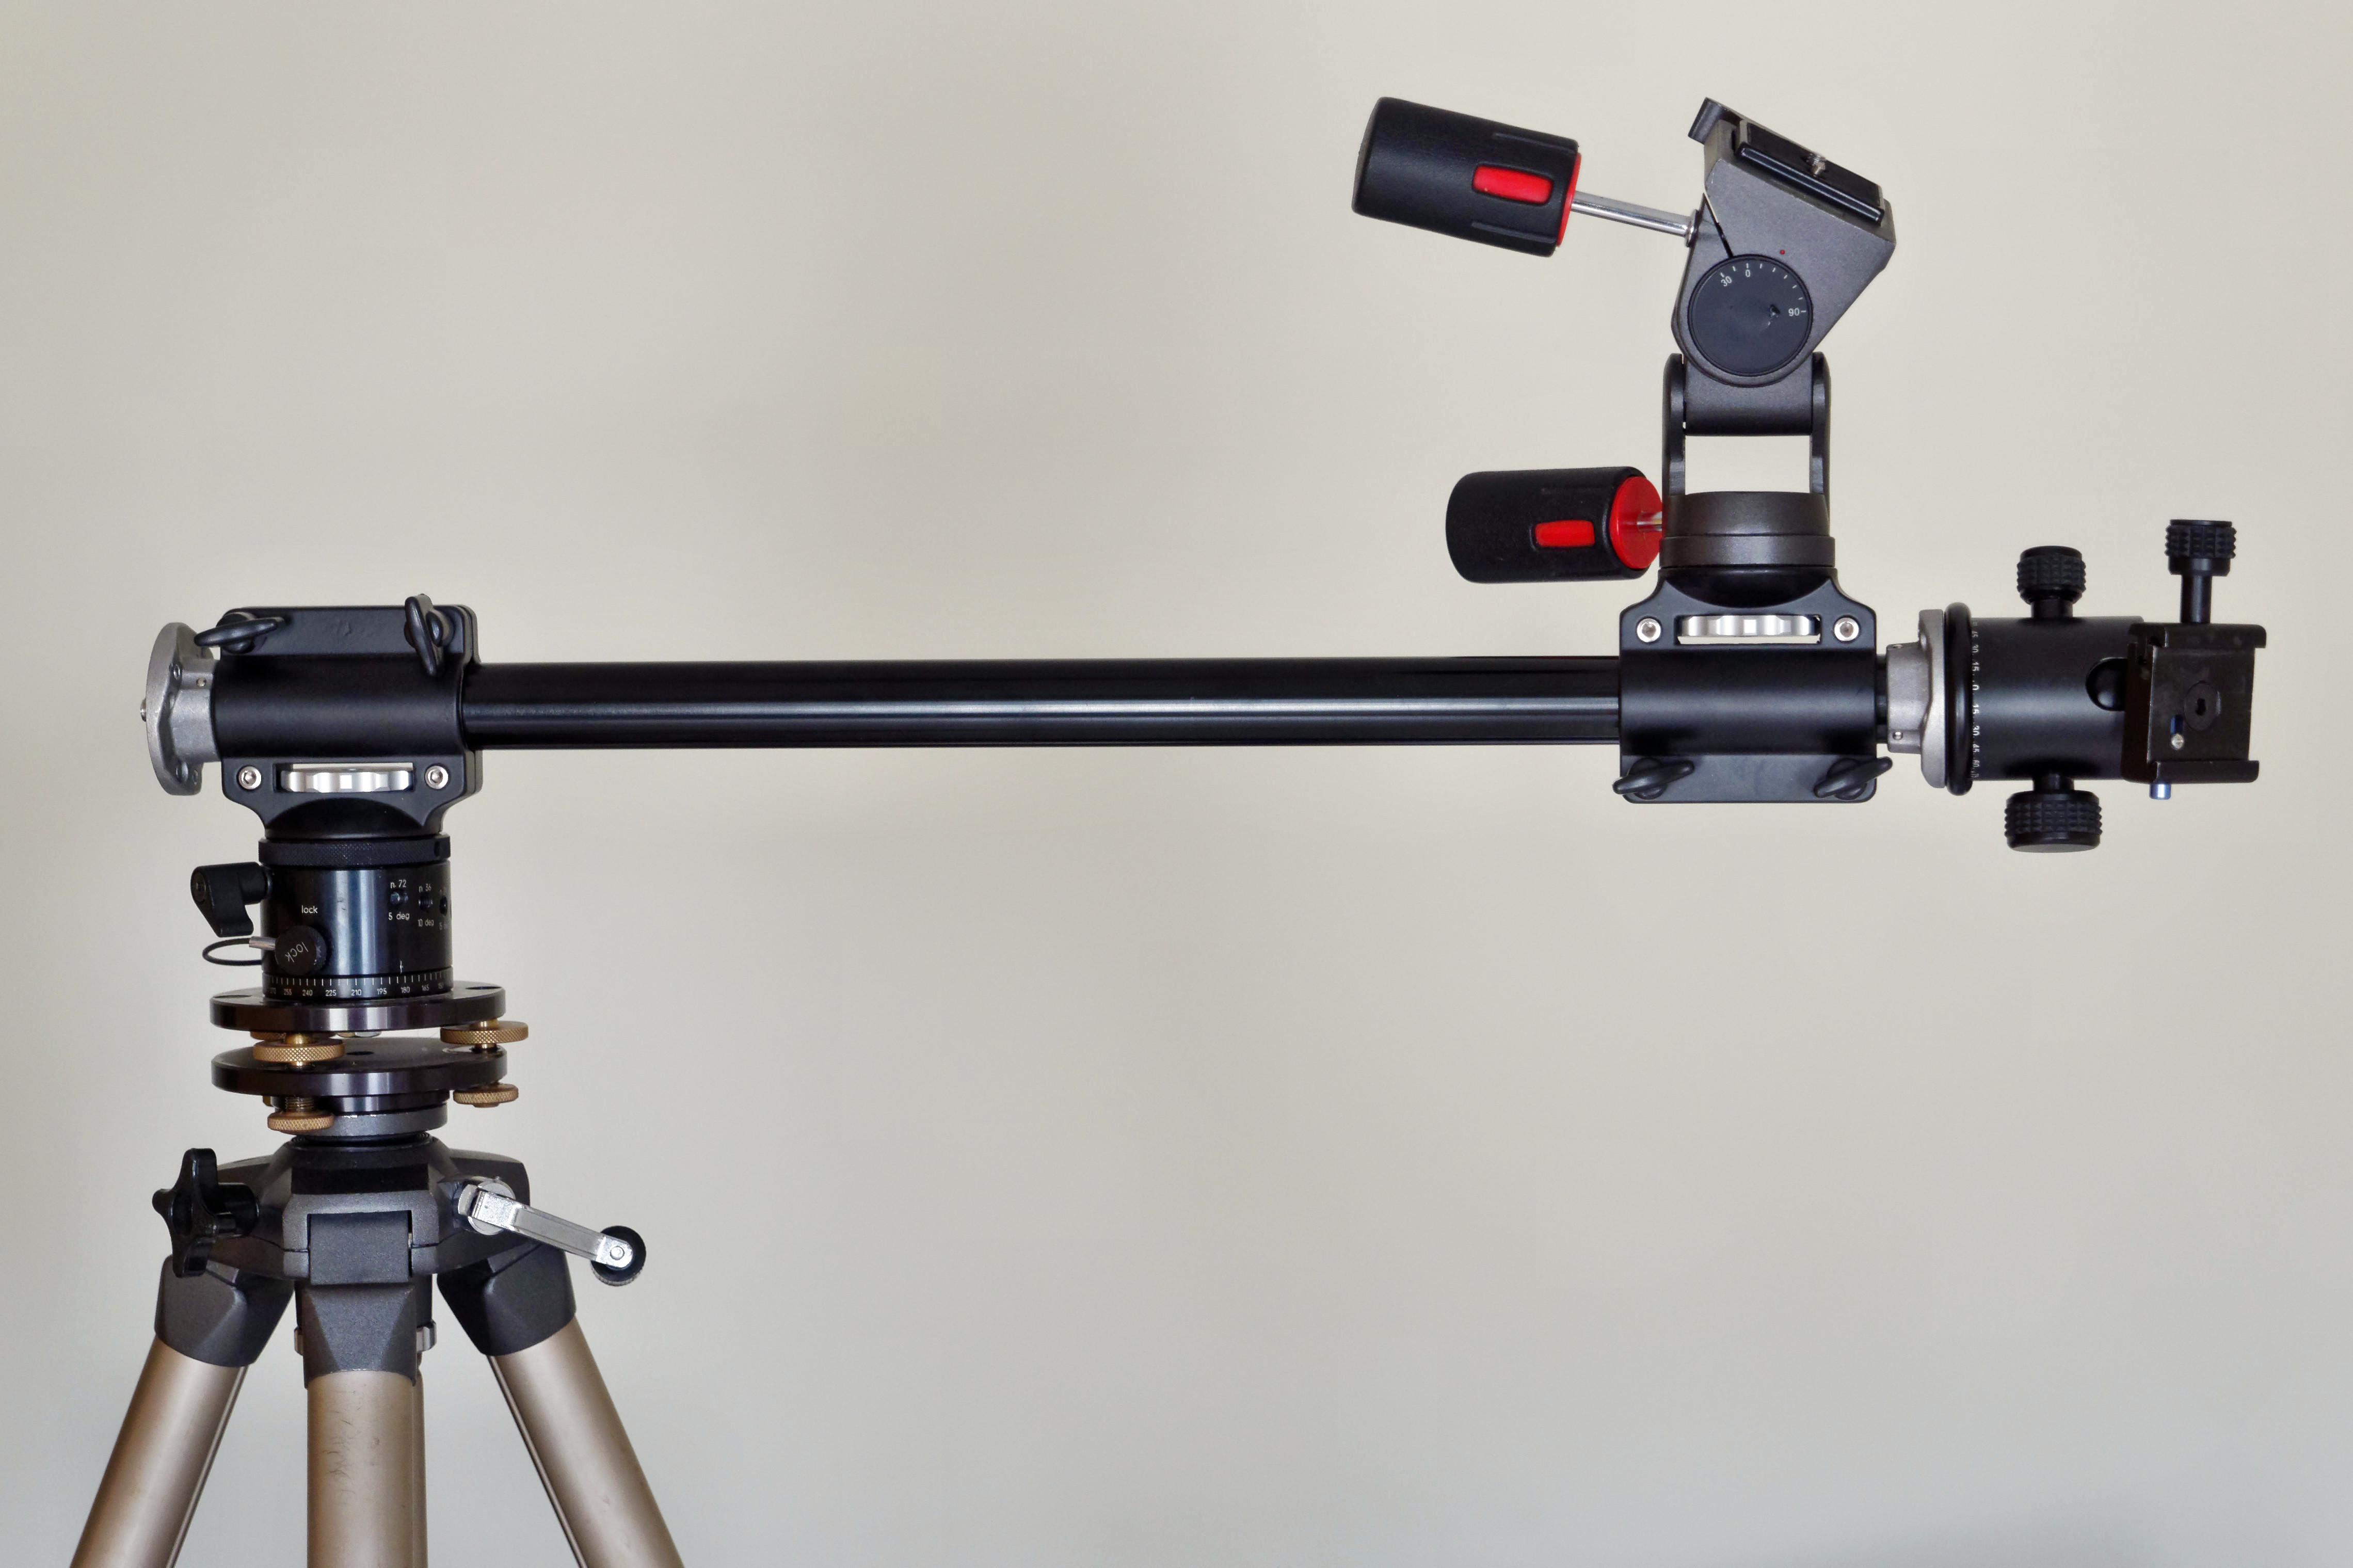 This should be Tripod-arm-1.jpeg.  Is it missing?